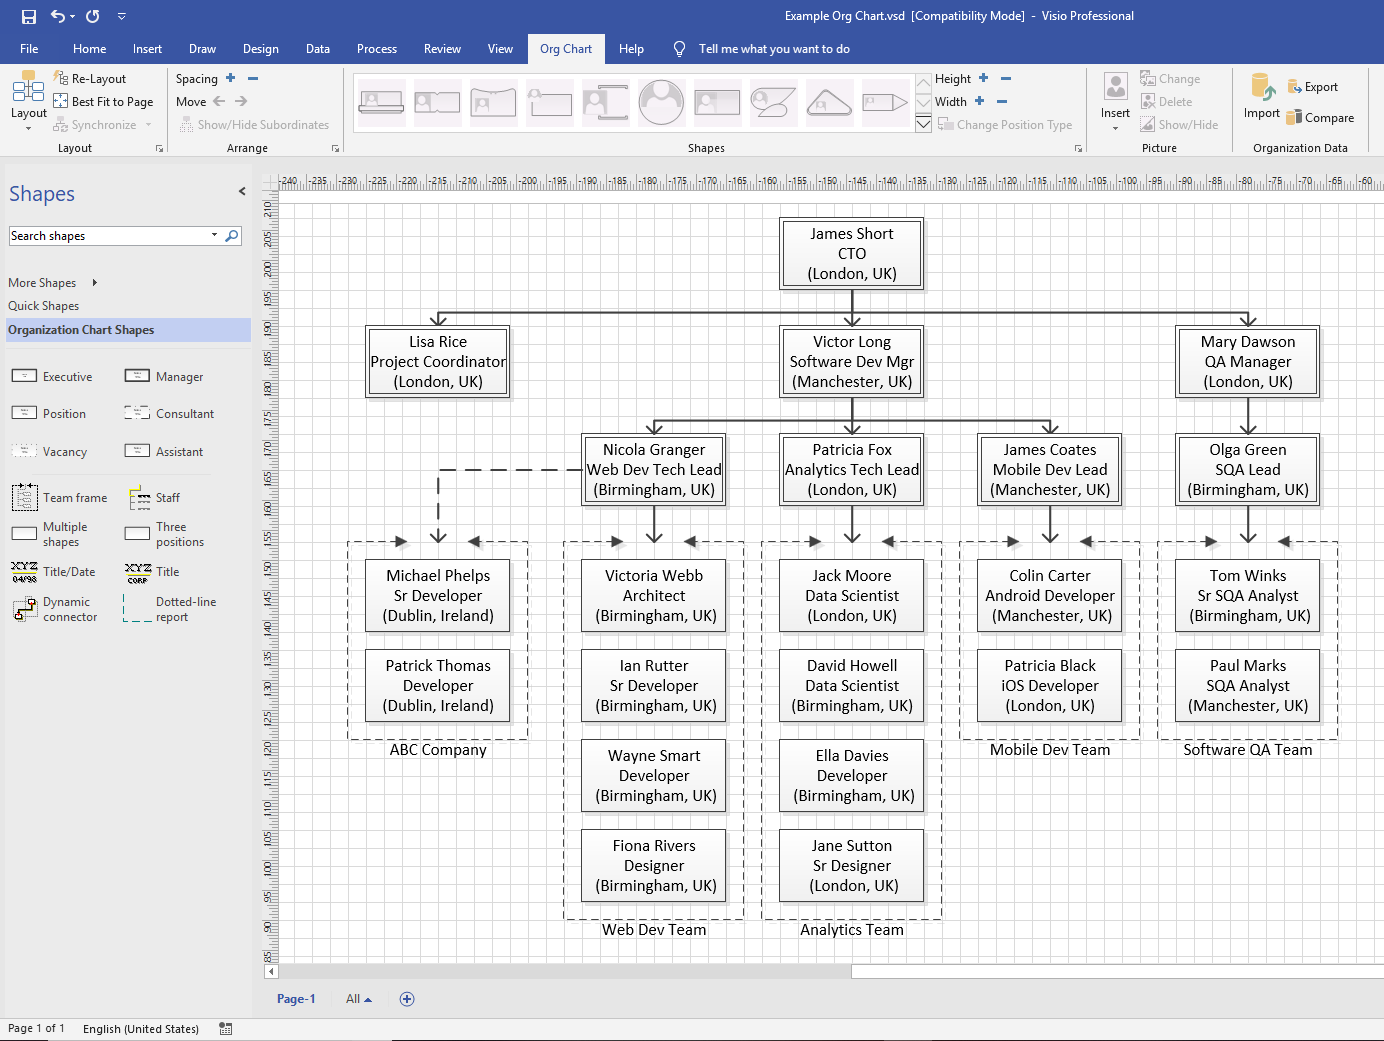 Visio Org Chart in old style